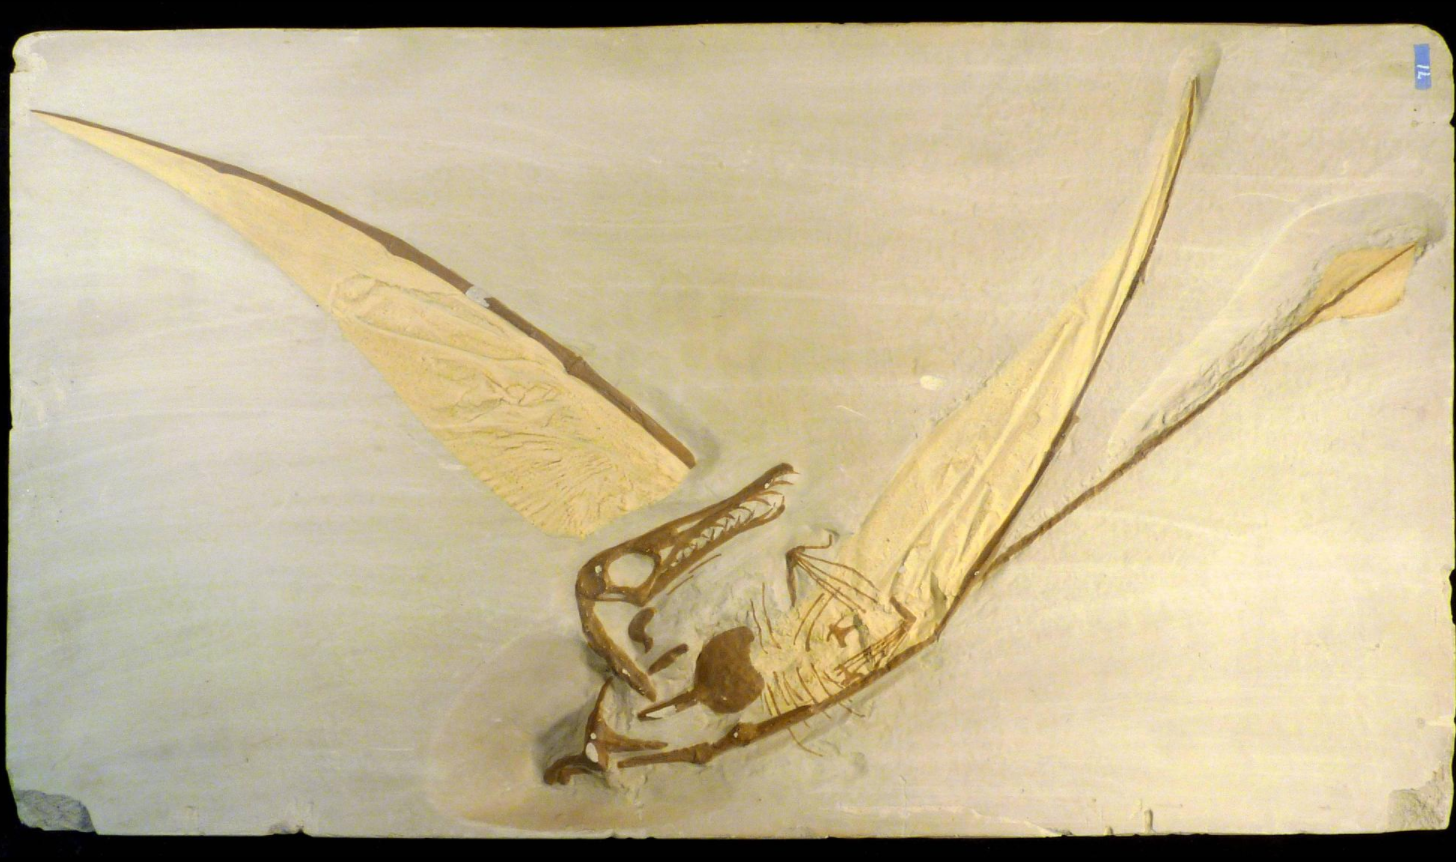 Cast made from the complete skull and skeleton of a pterodon found in Bavaria, Germany. (Smithsonian / NMNH Paleobiology)